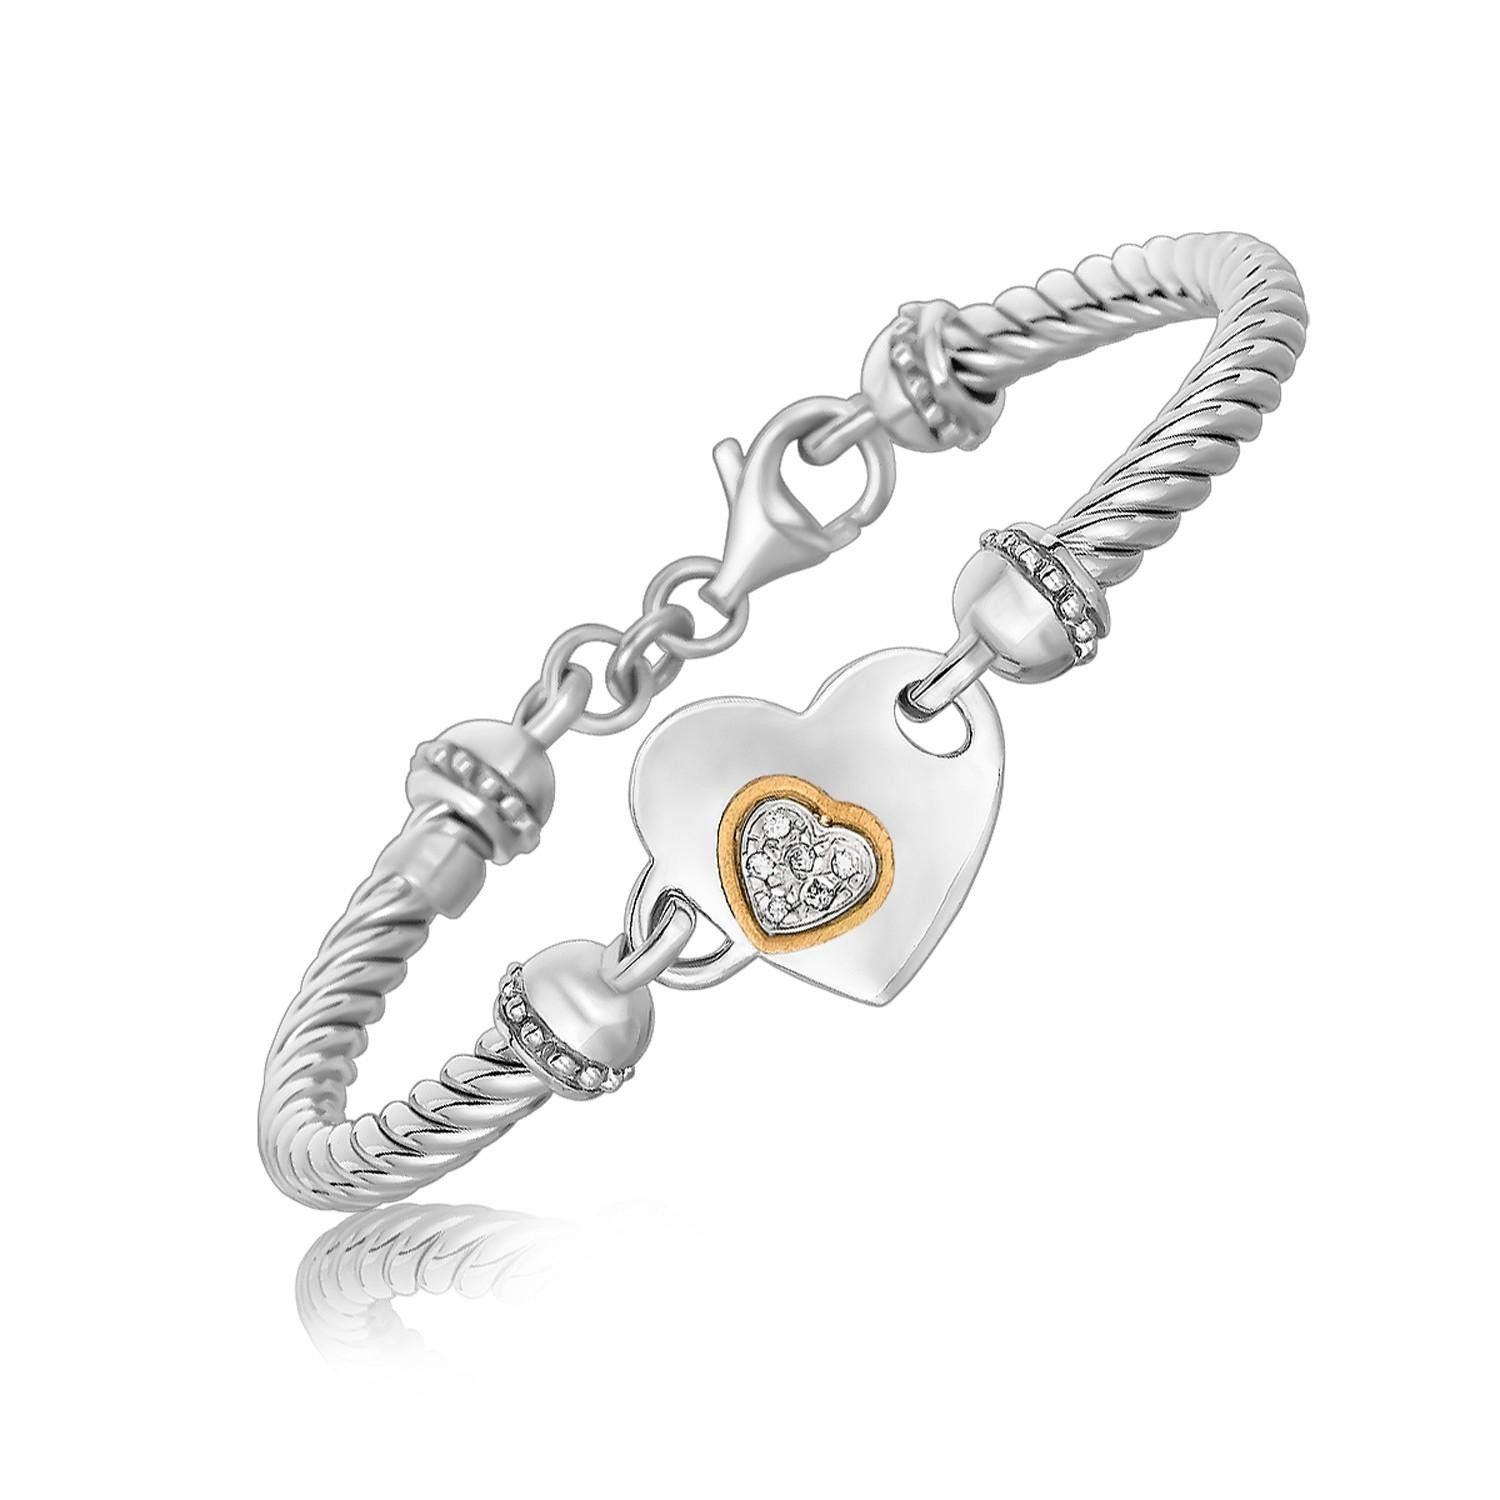 K Yellow Gold and Sterling Silver Heart Design Bracelet with